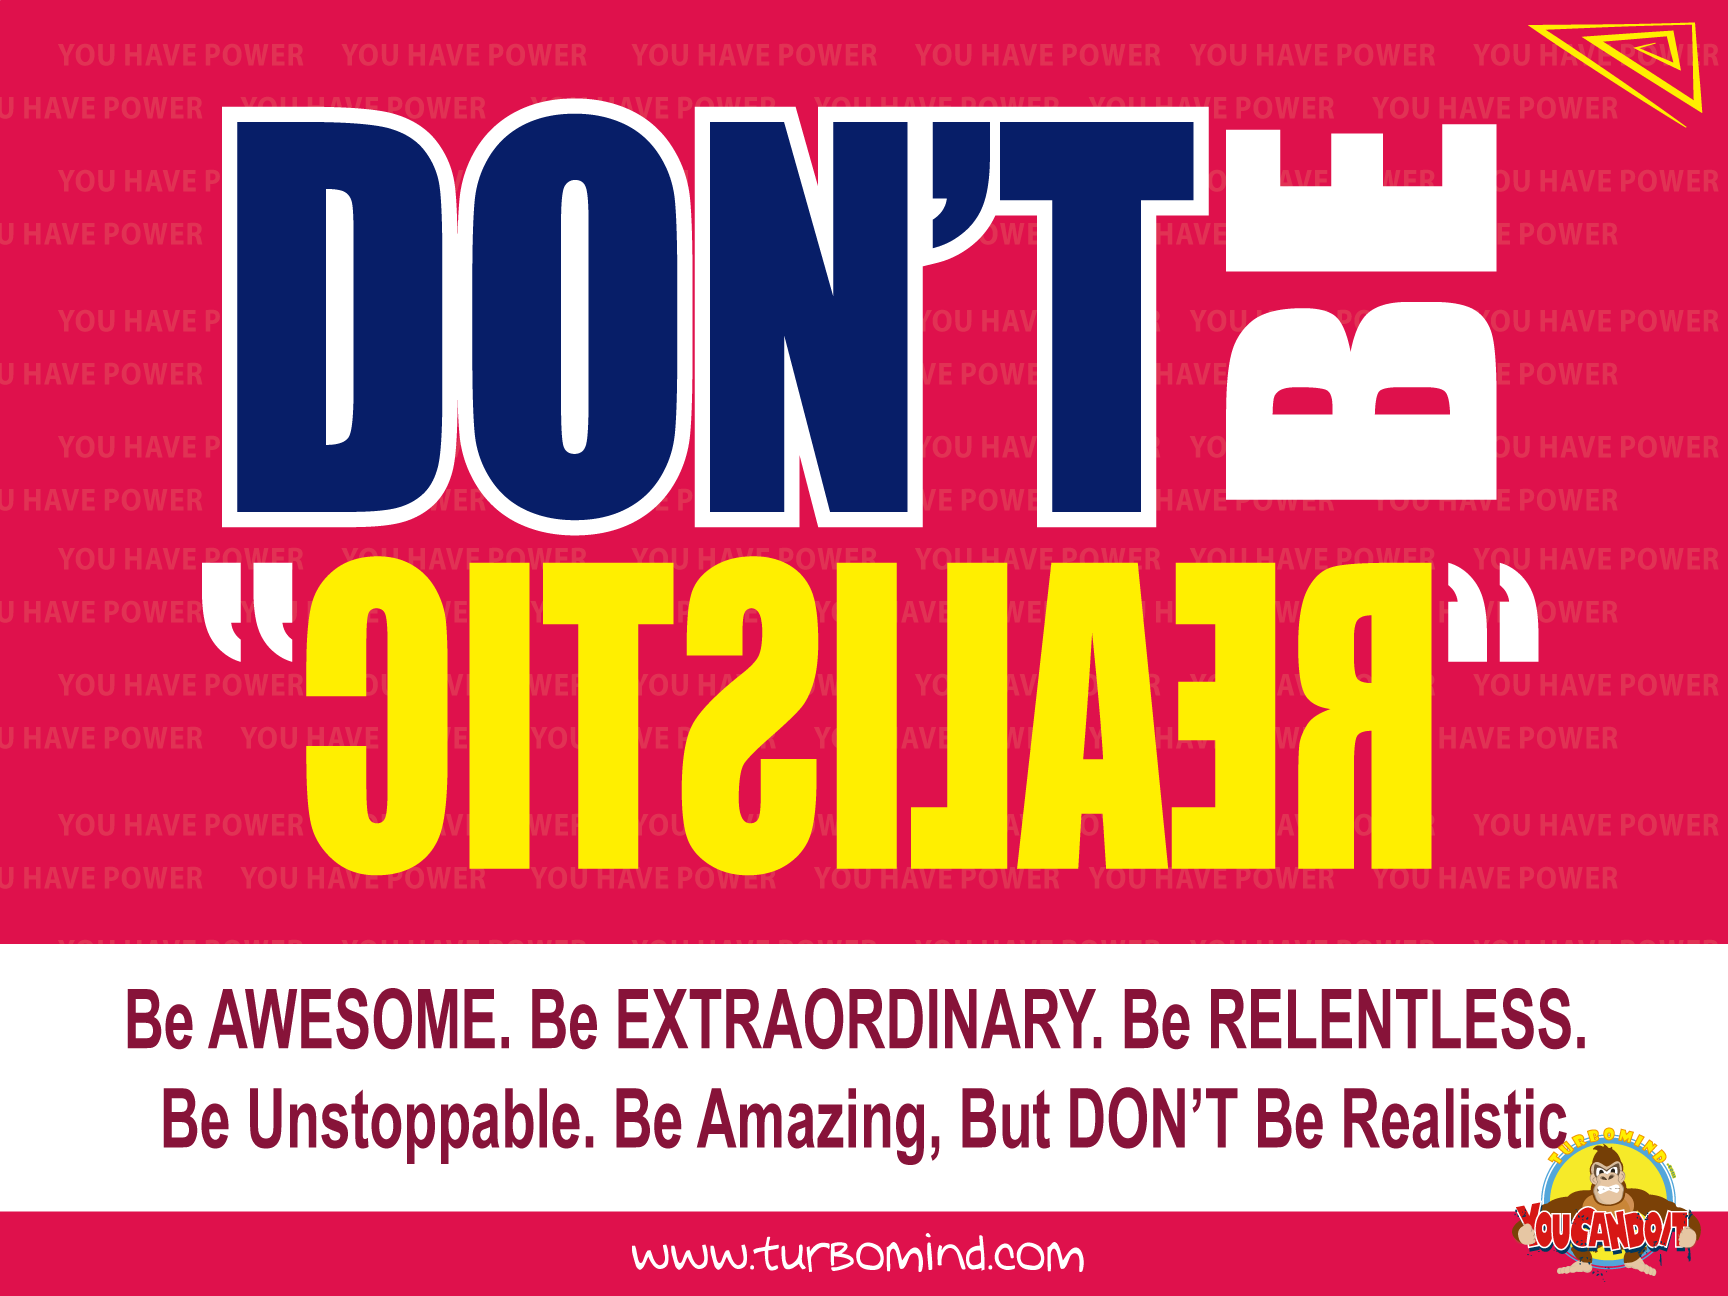 Dont be realistic, be awesome, turbomind.com